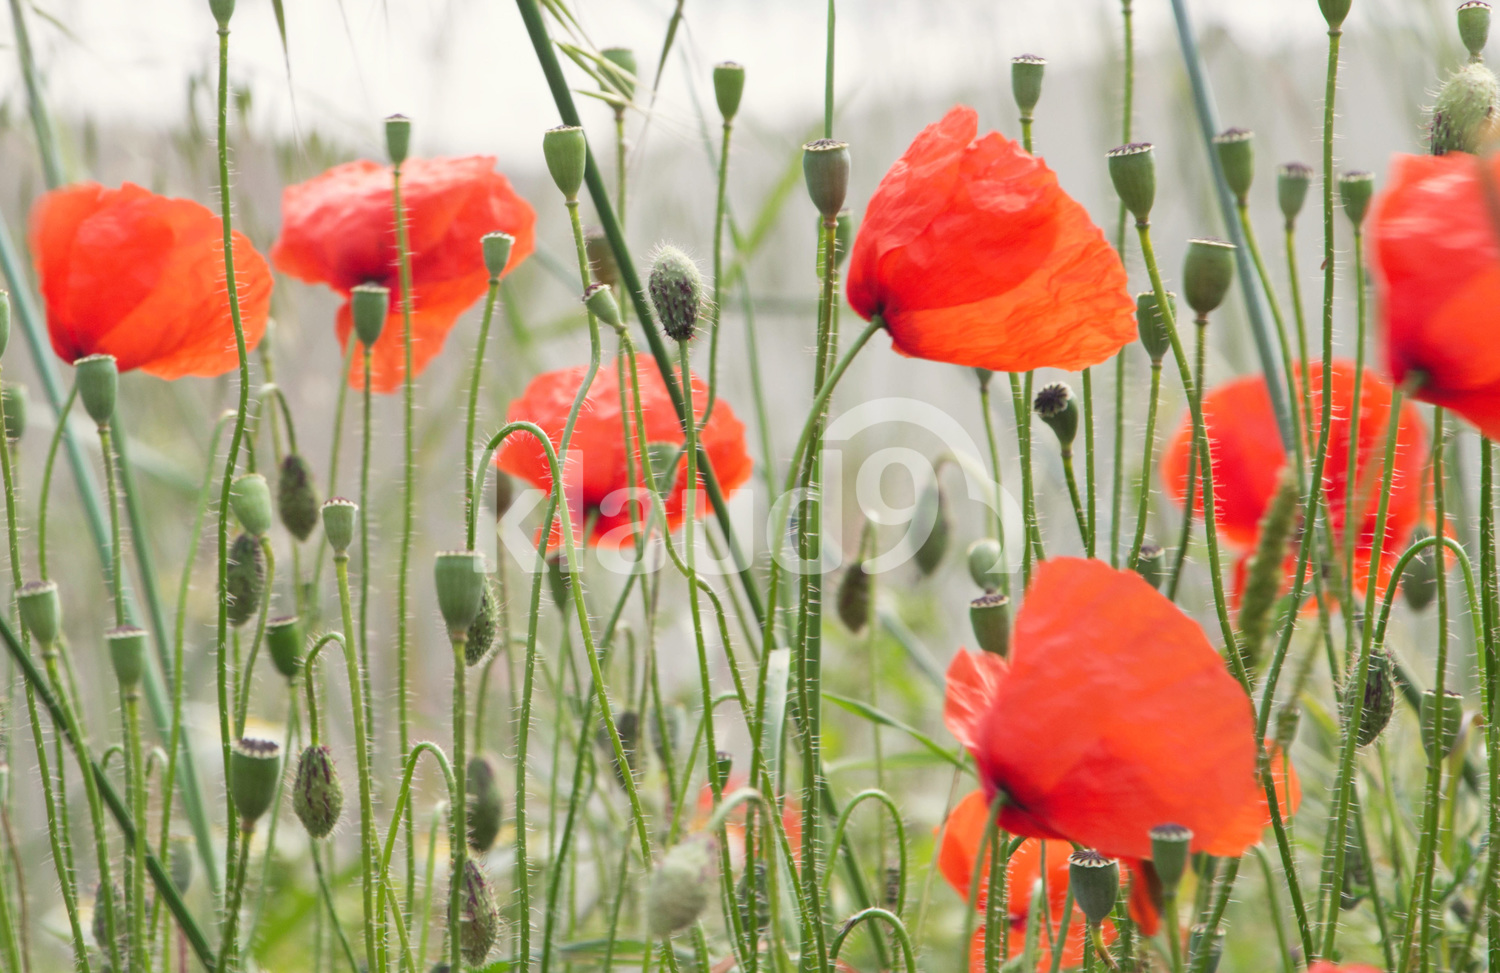 Field of poppies in the early morning